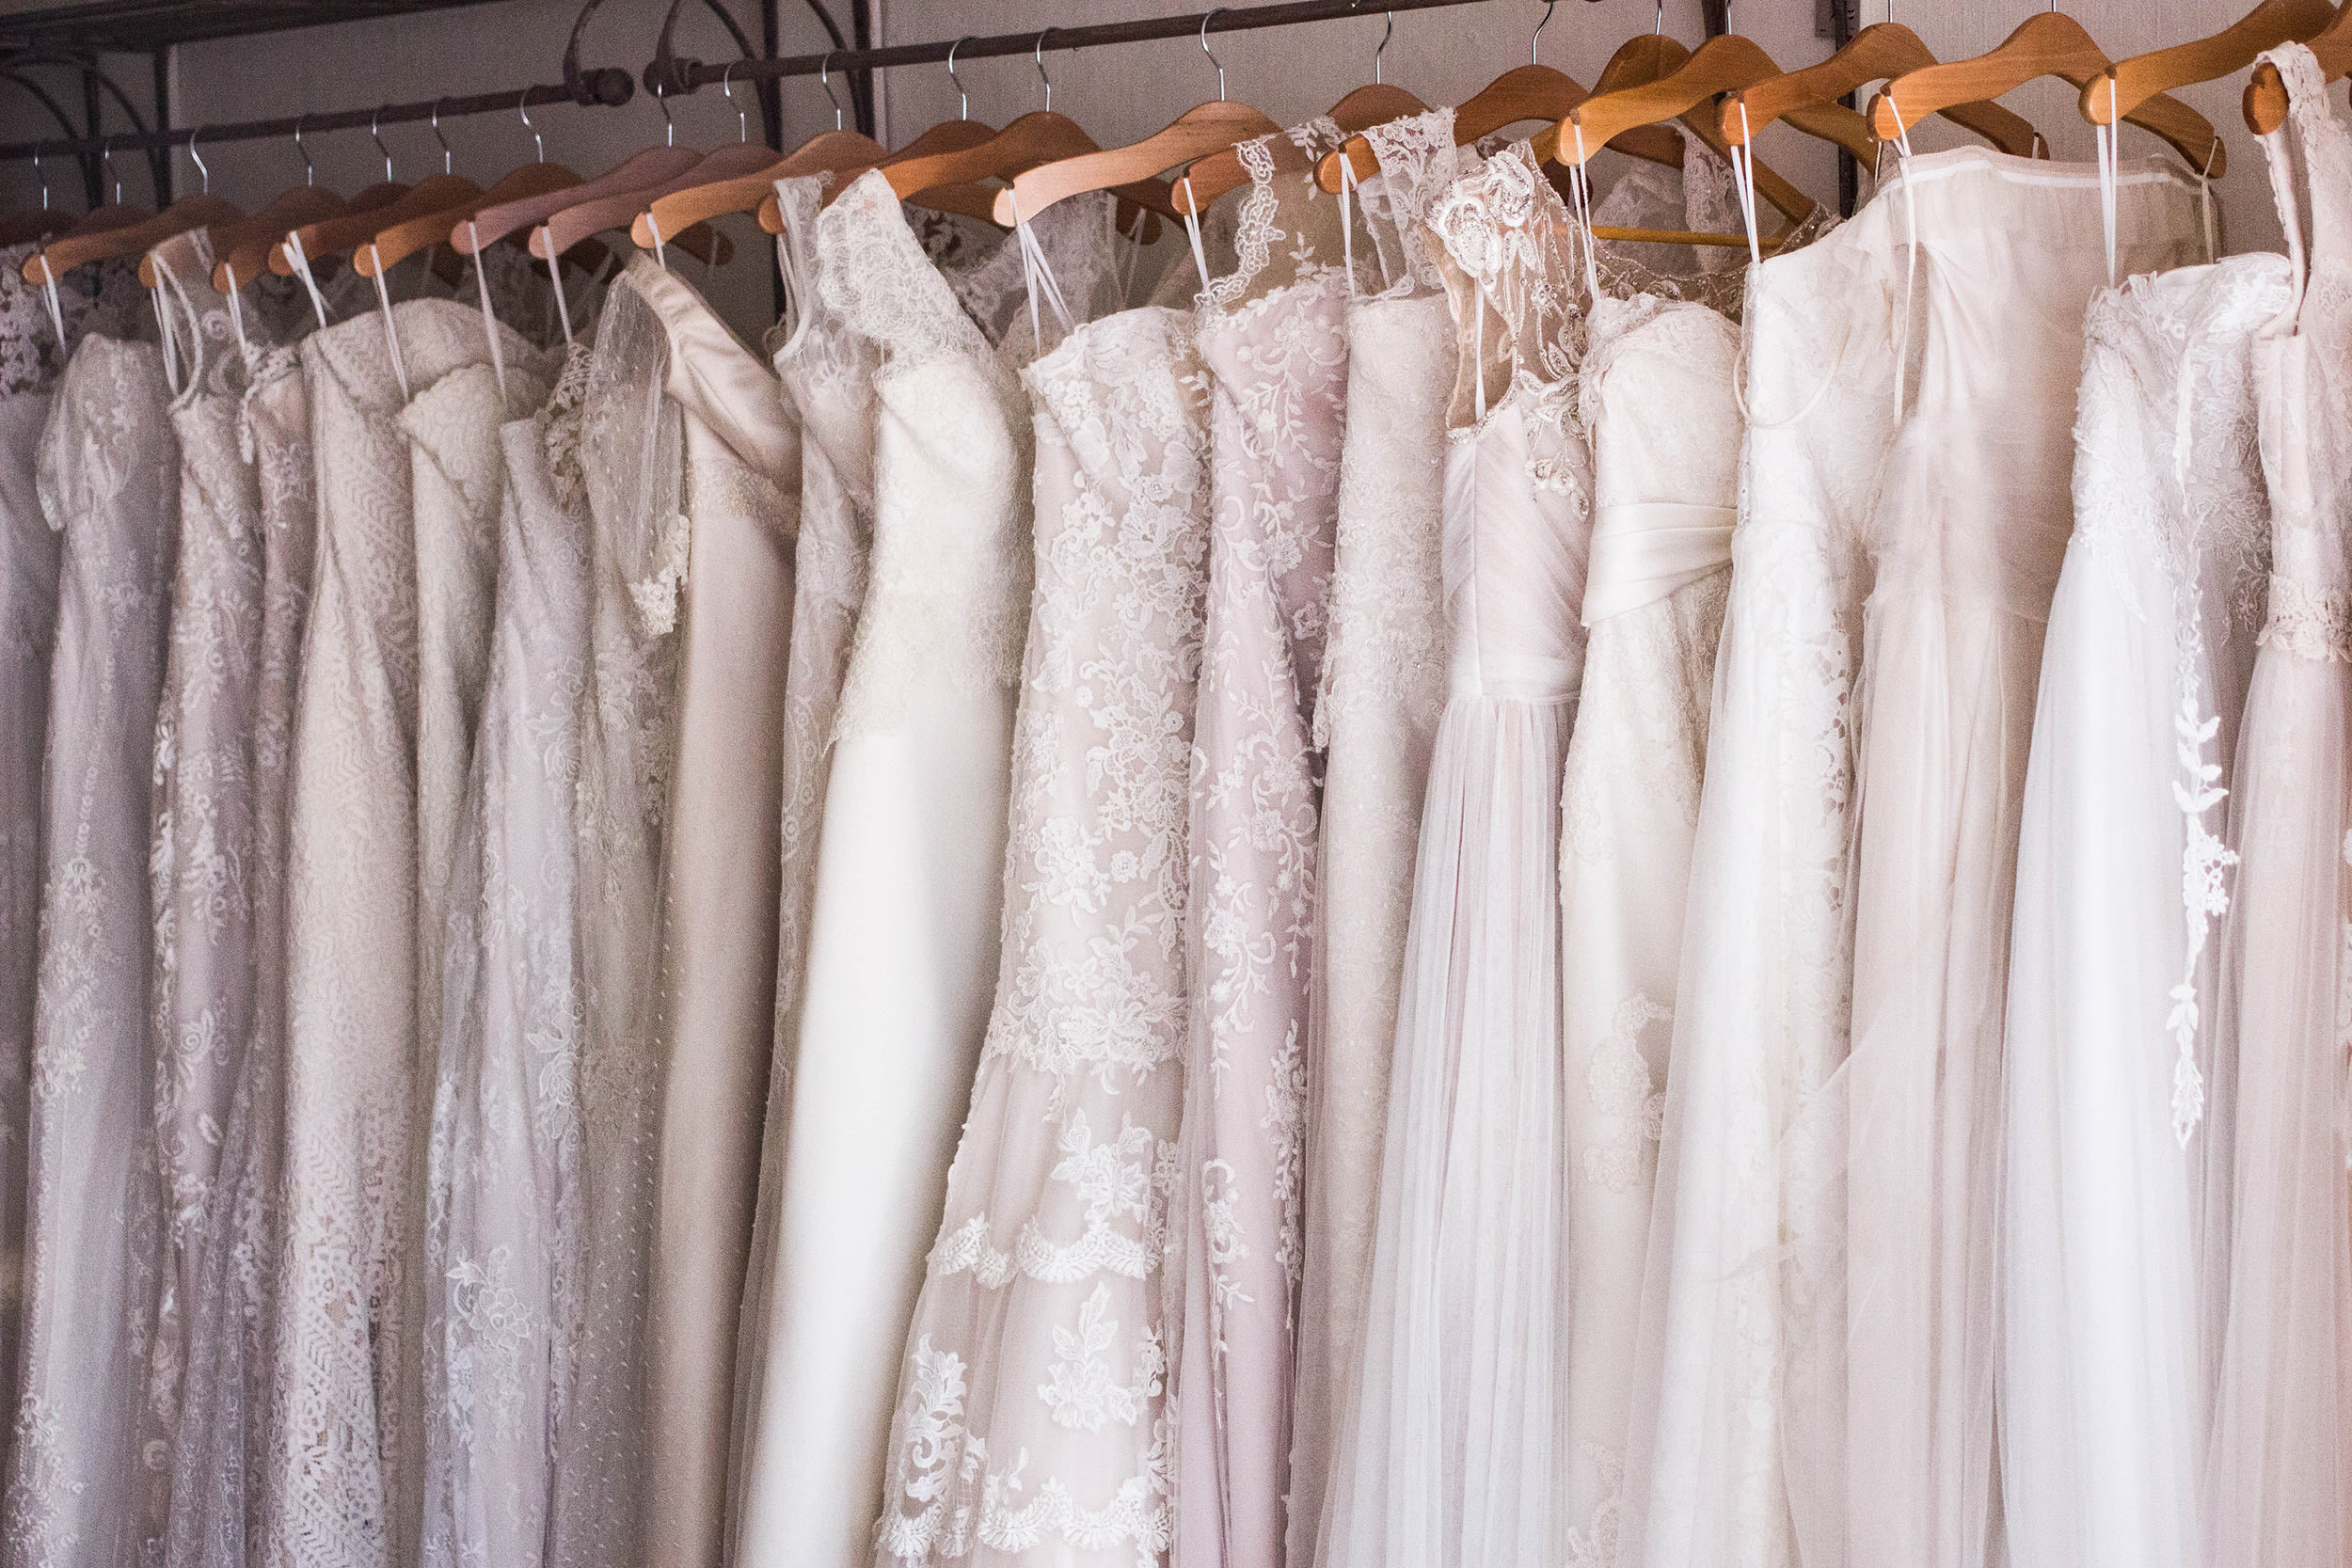 How to store your wedding dress after the big day